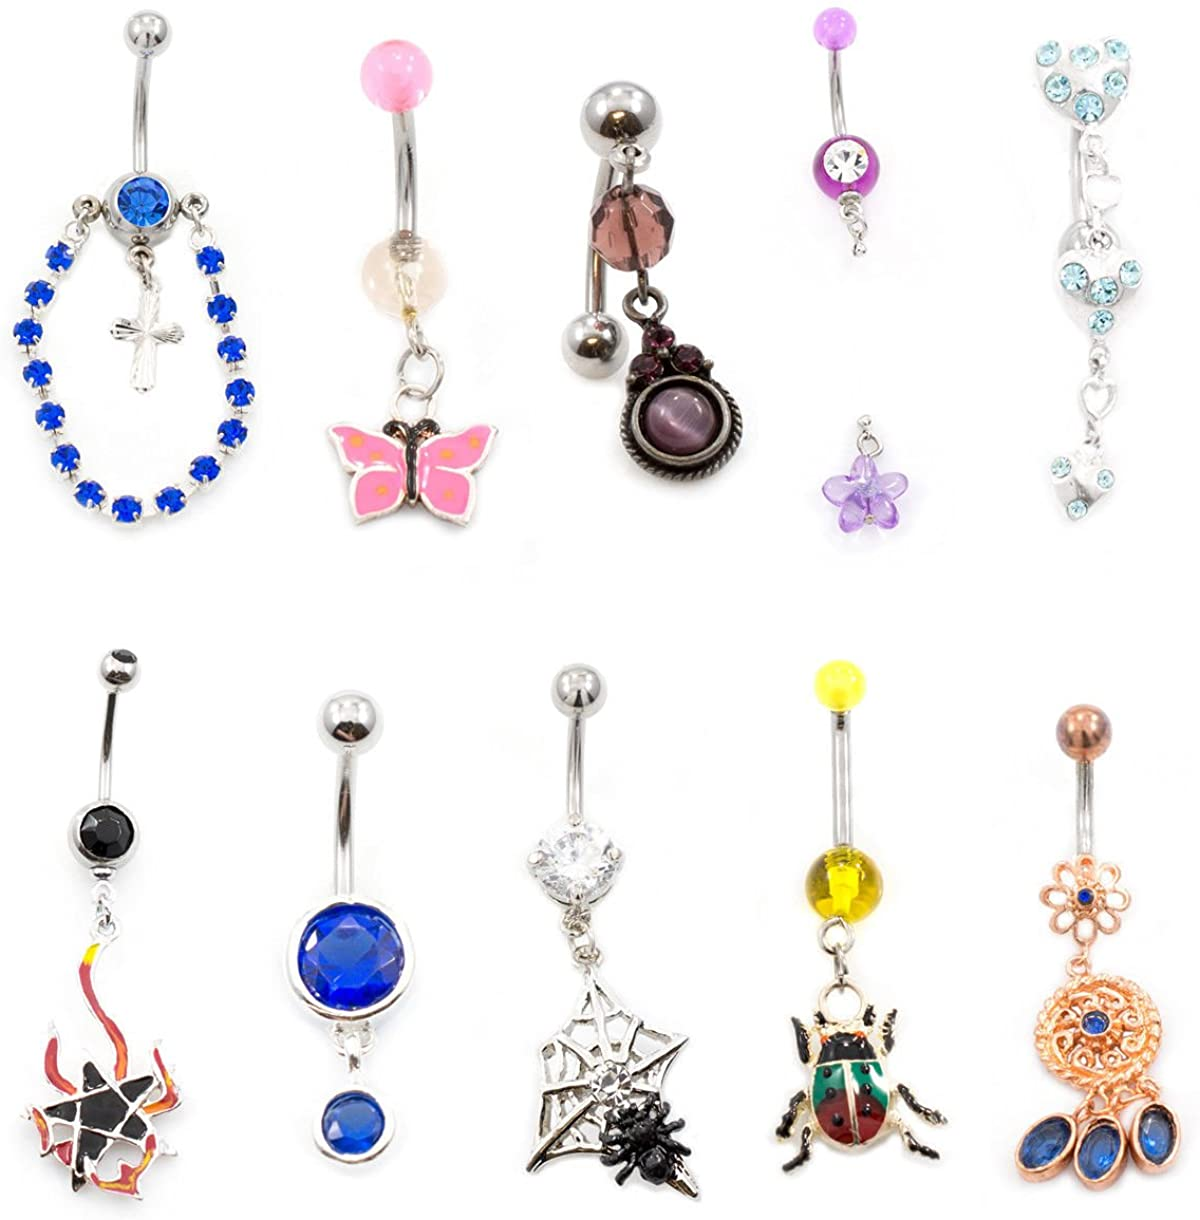 BodyJewelryOnline Belly Button Ring Pack of 10 Love The Nature Collection Navel Rings with Unique Designs 14g